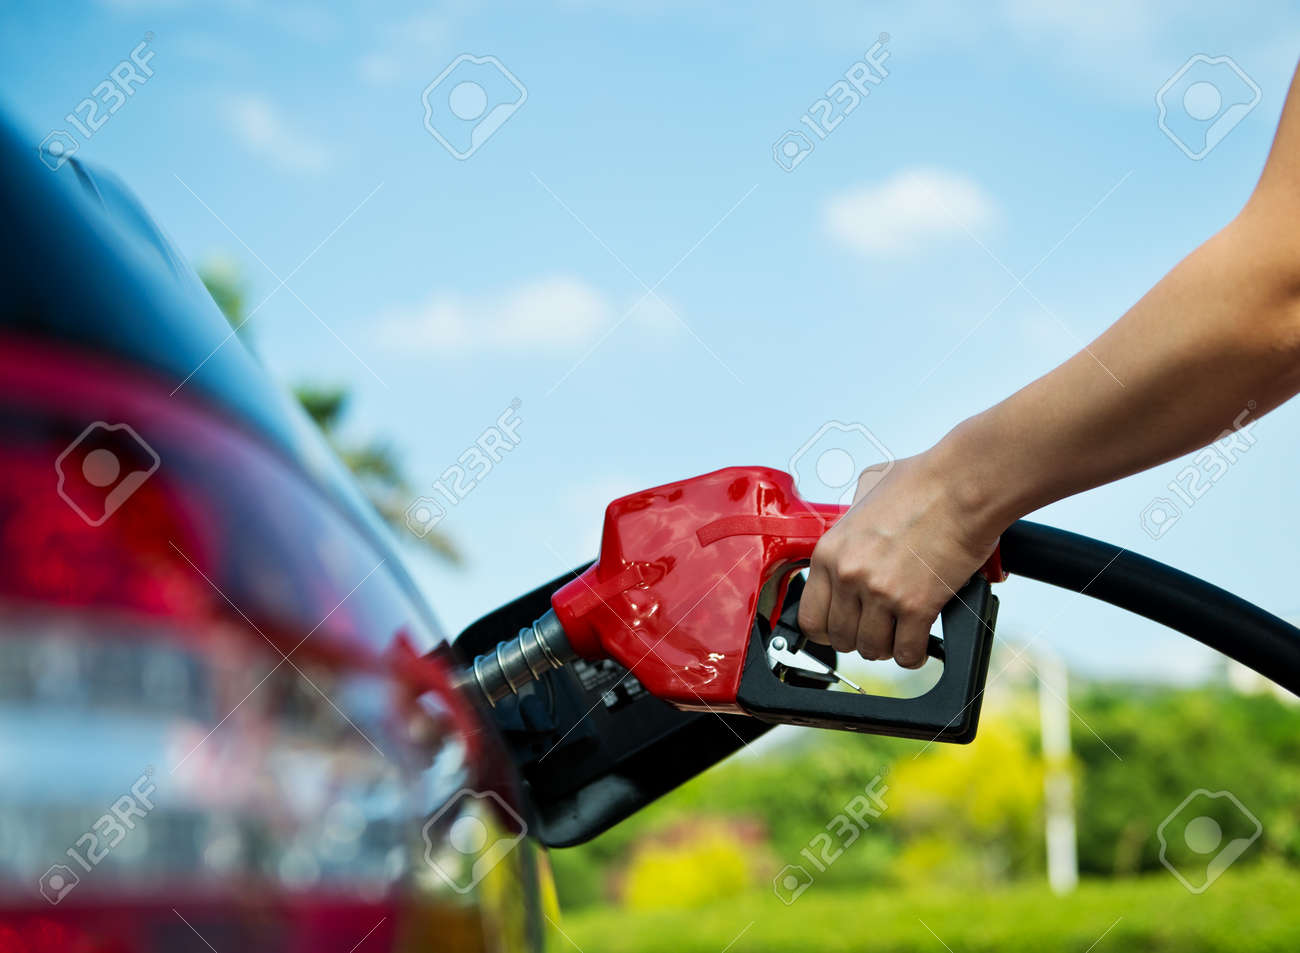 Hand refilling the car with fuel. - 33782476